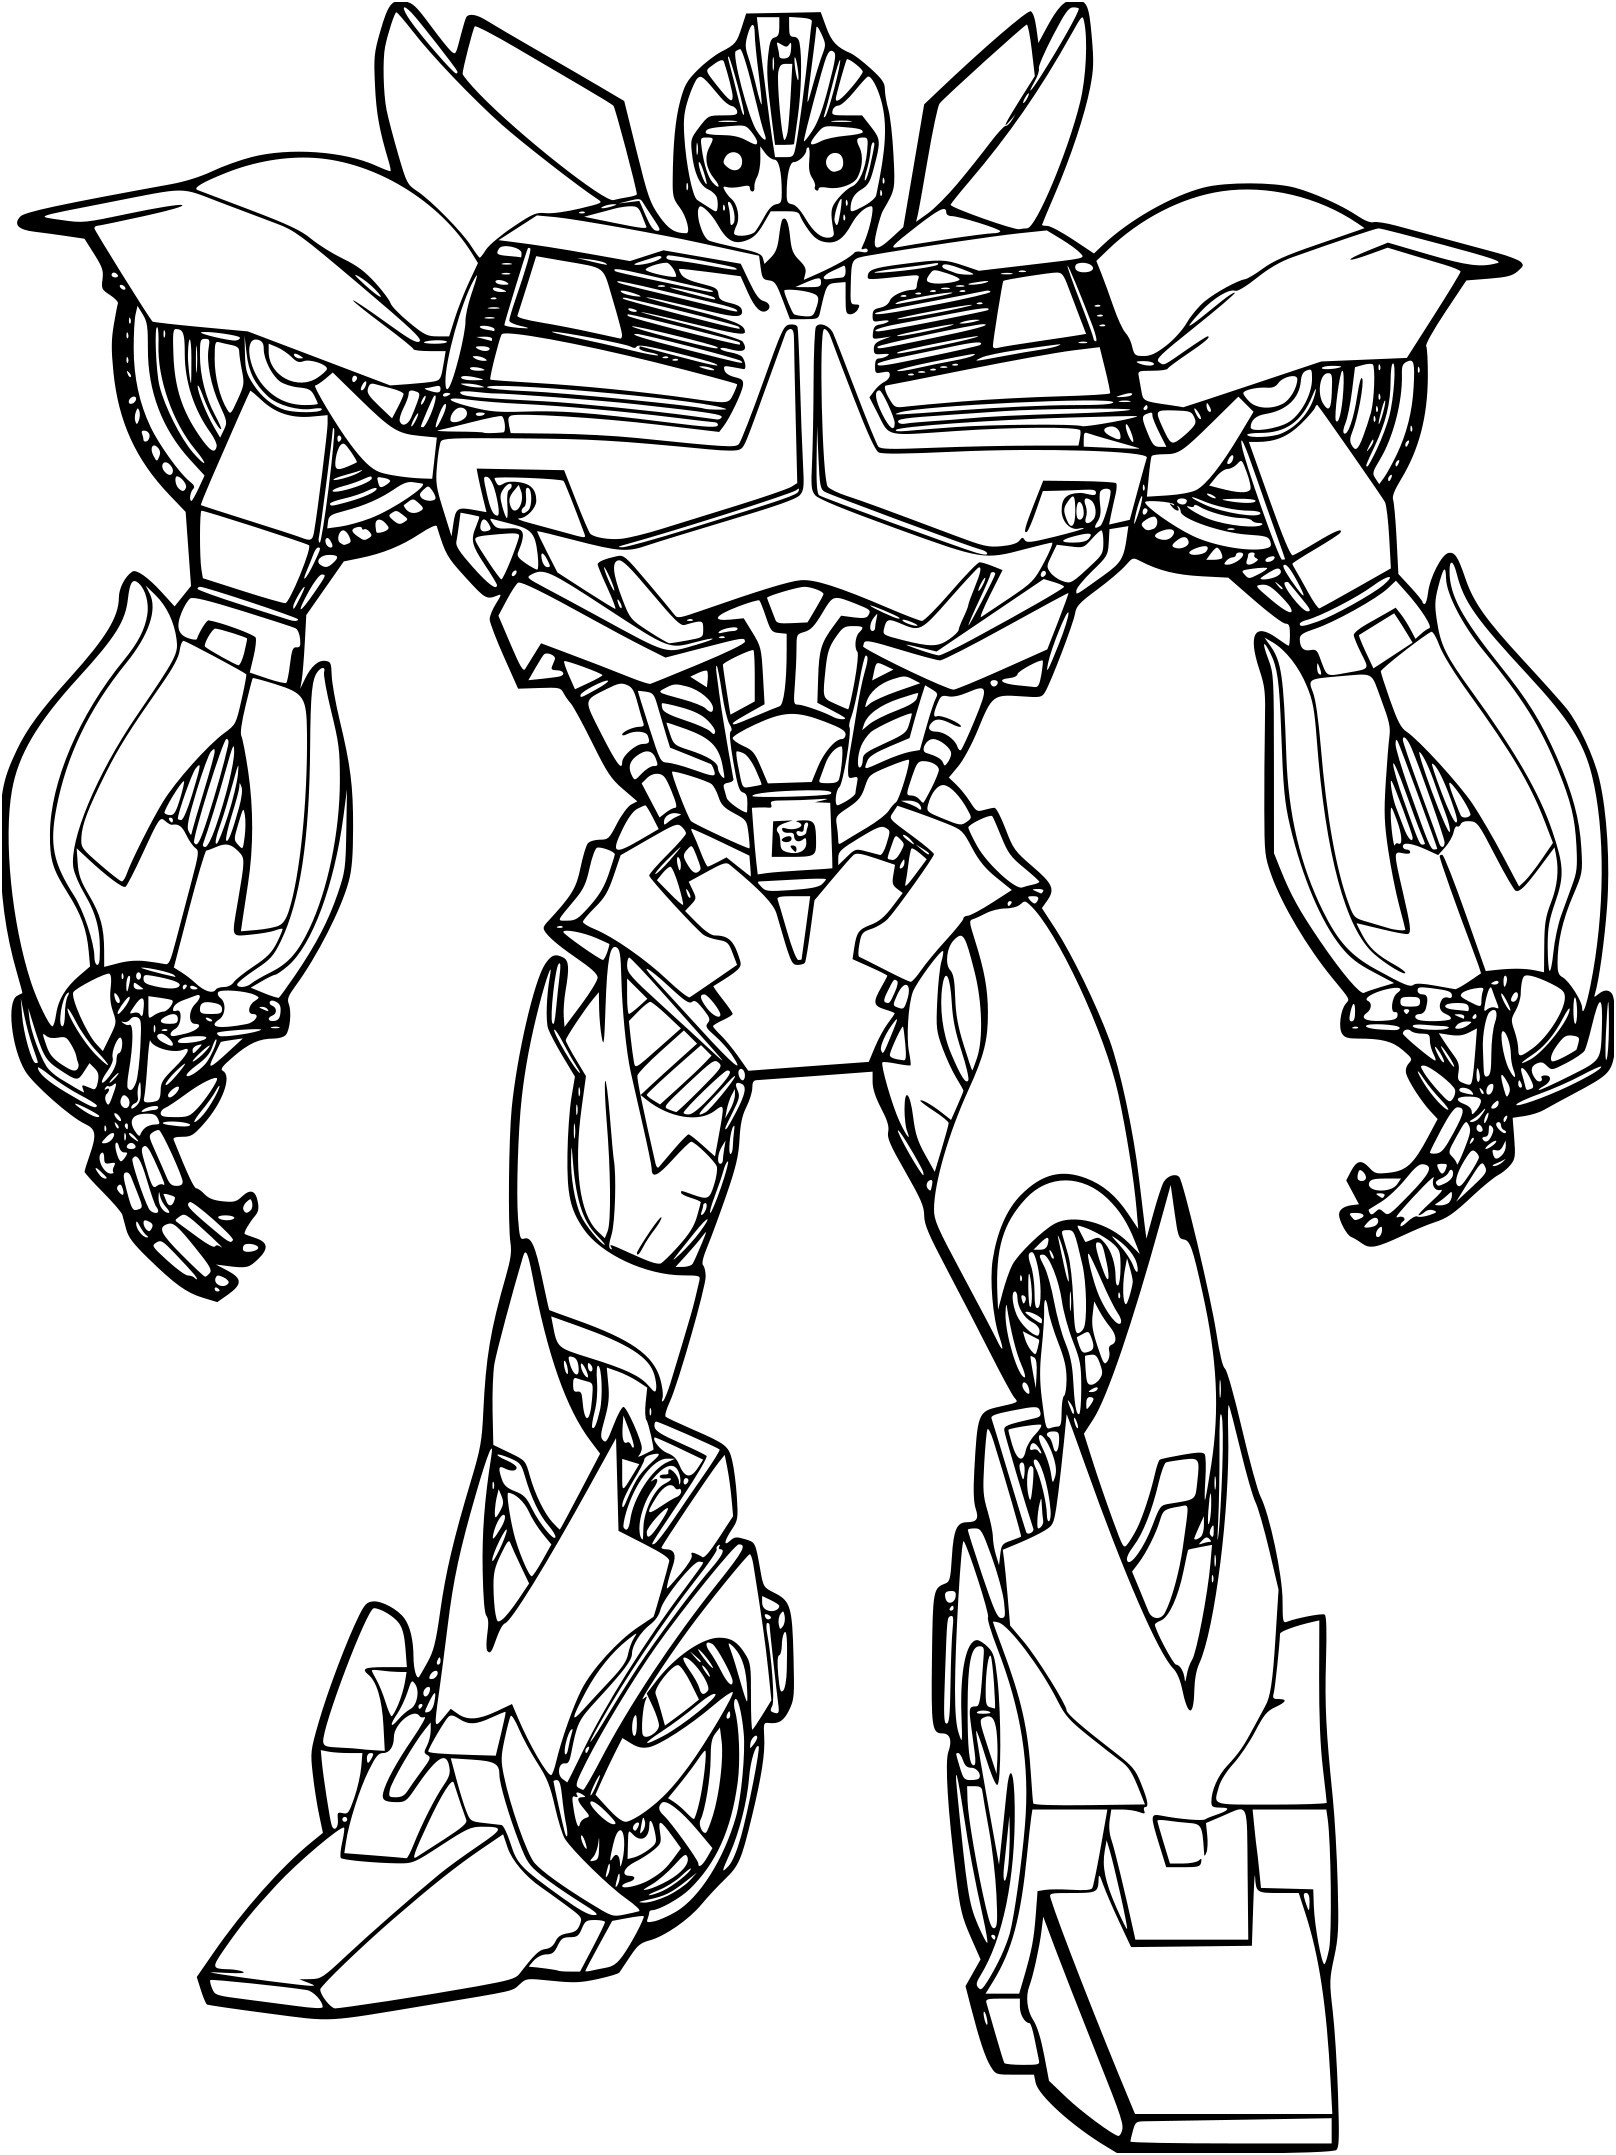 9 Largement Optimus Prime Coloriage Collection - Coloriage tout Coloriage À Imprimer Transformers